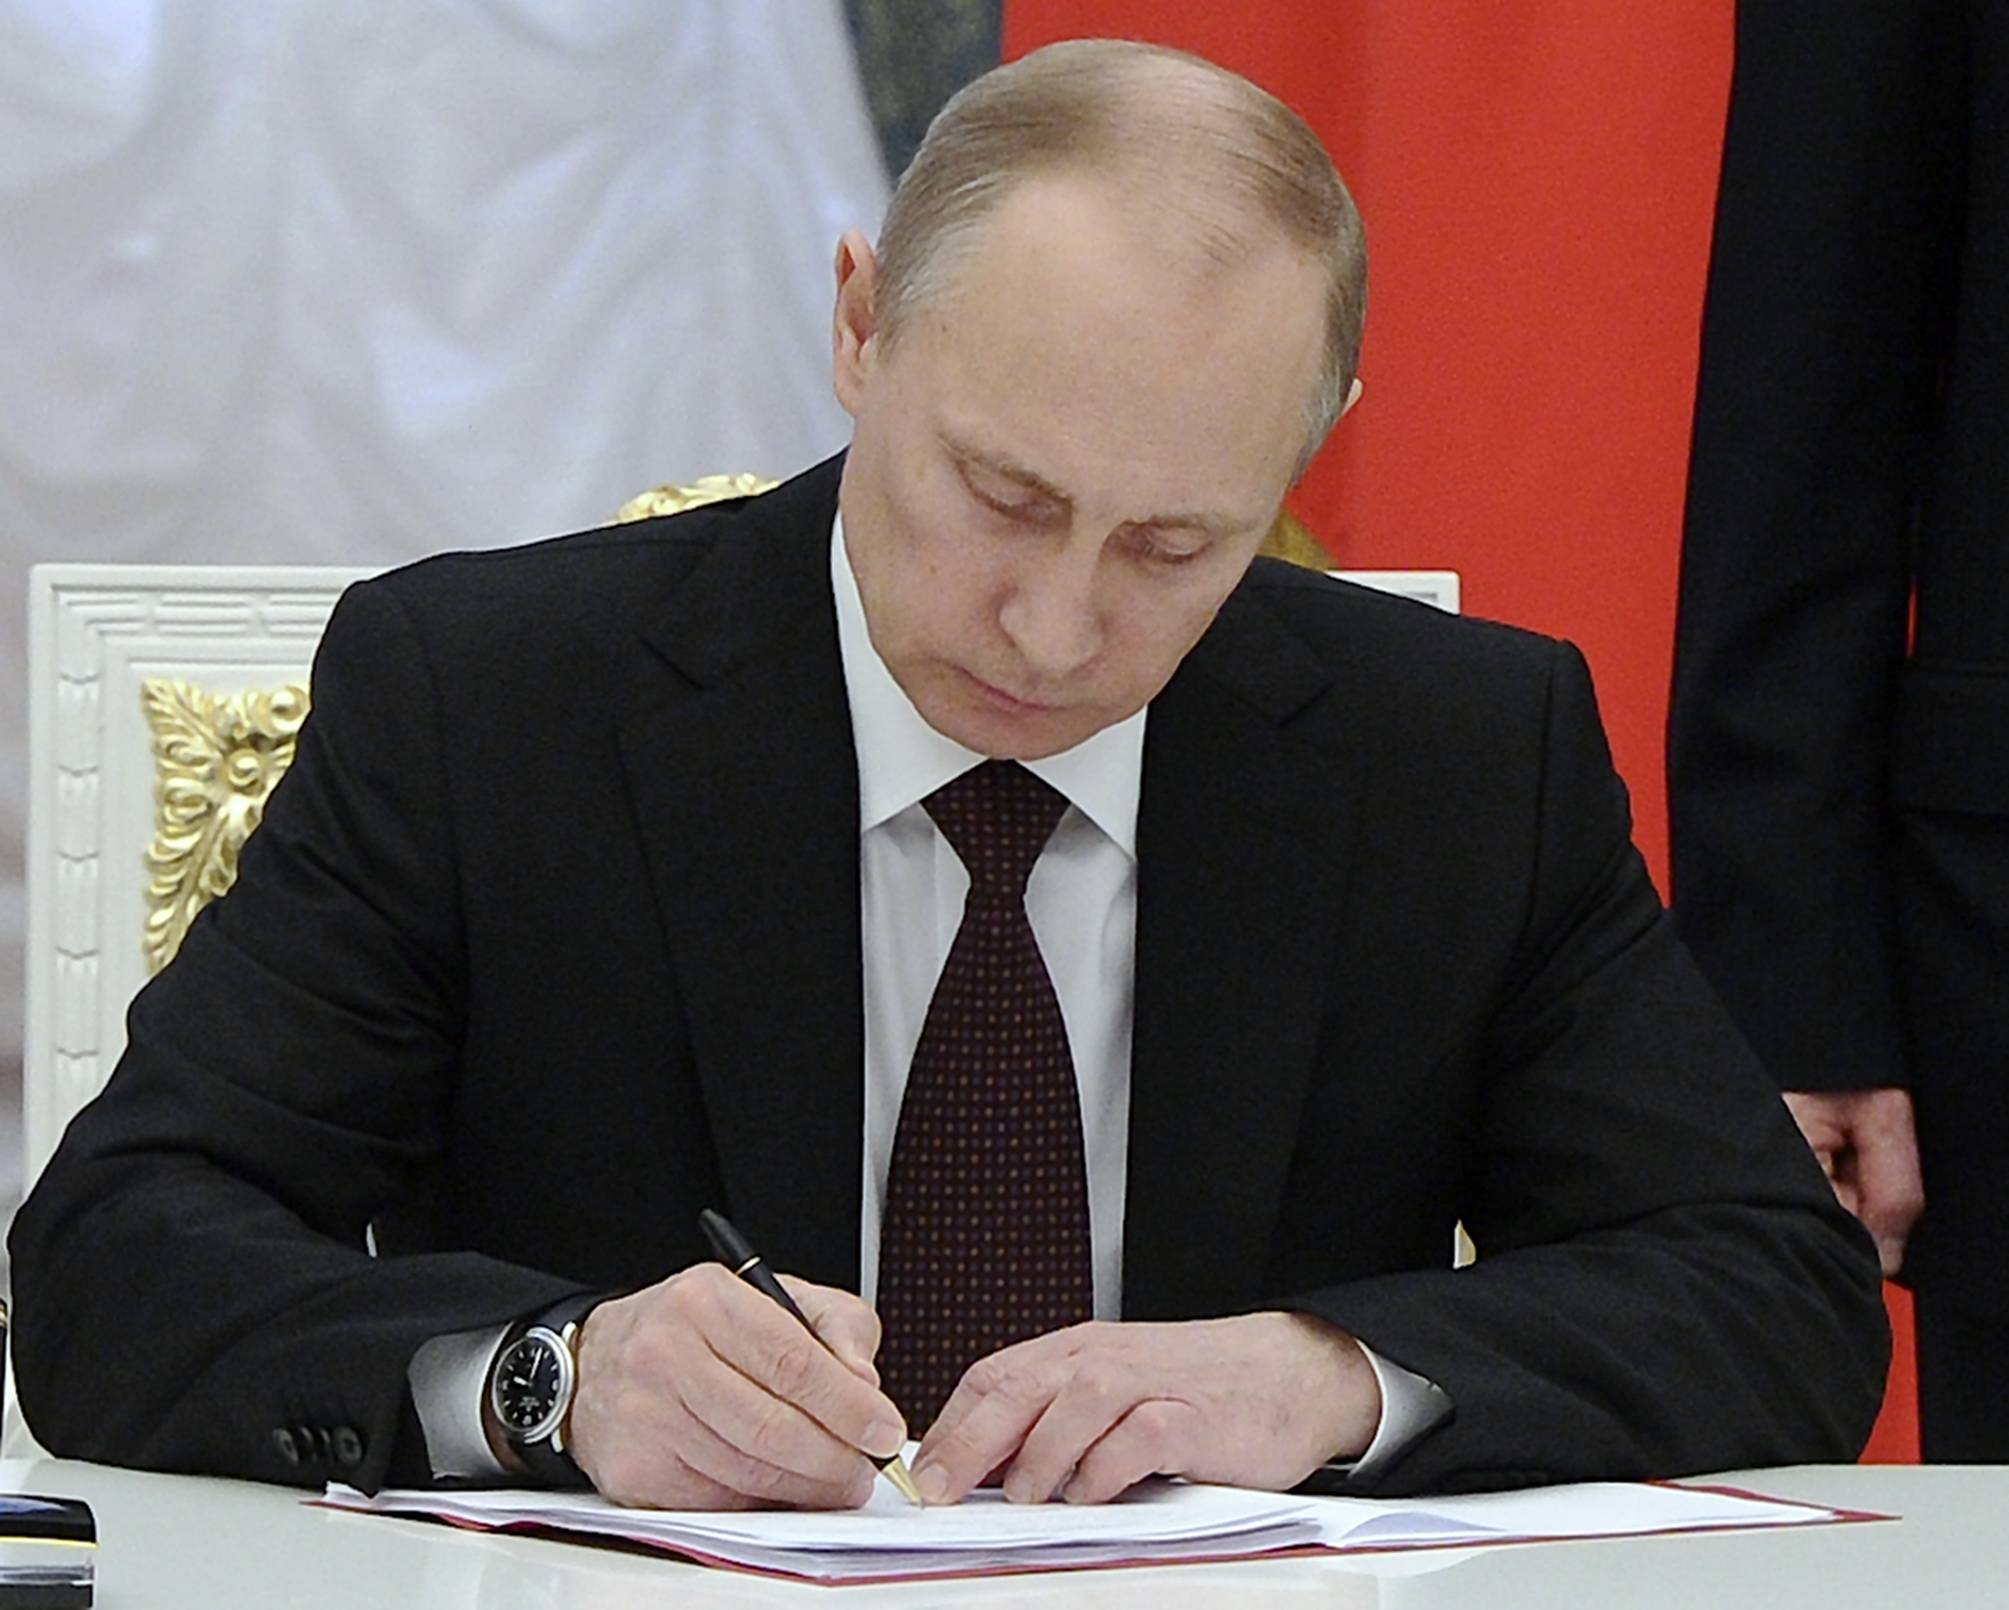 Russian President Vladimir Putin signs bills making Crimea part of Russia in the Kremlin in Moscow, Friday, March 21, 2014. President Vladimir Putin completed the annexation of Crimea on Friday, signing the peninsula into Russia at nearly the same time his Ukrainian counterpart sealed a deal pulling his country closer into Europe's orbit.